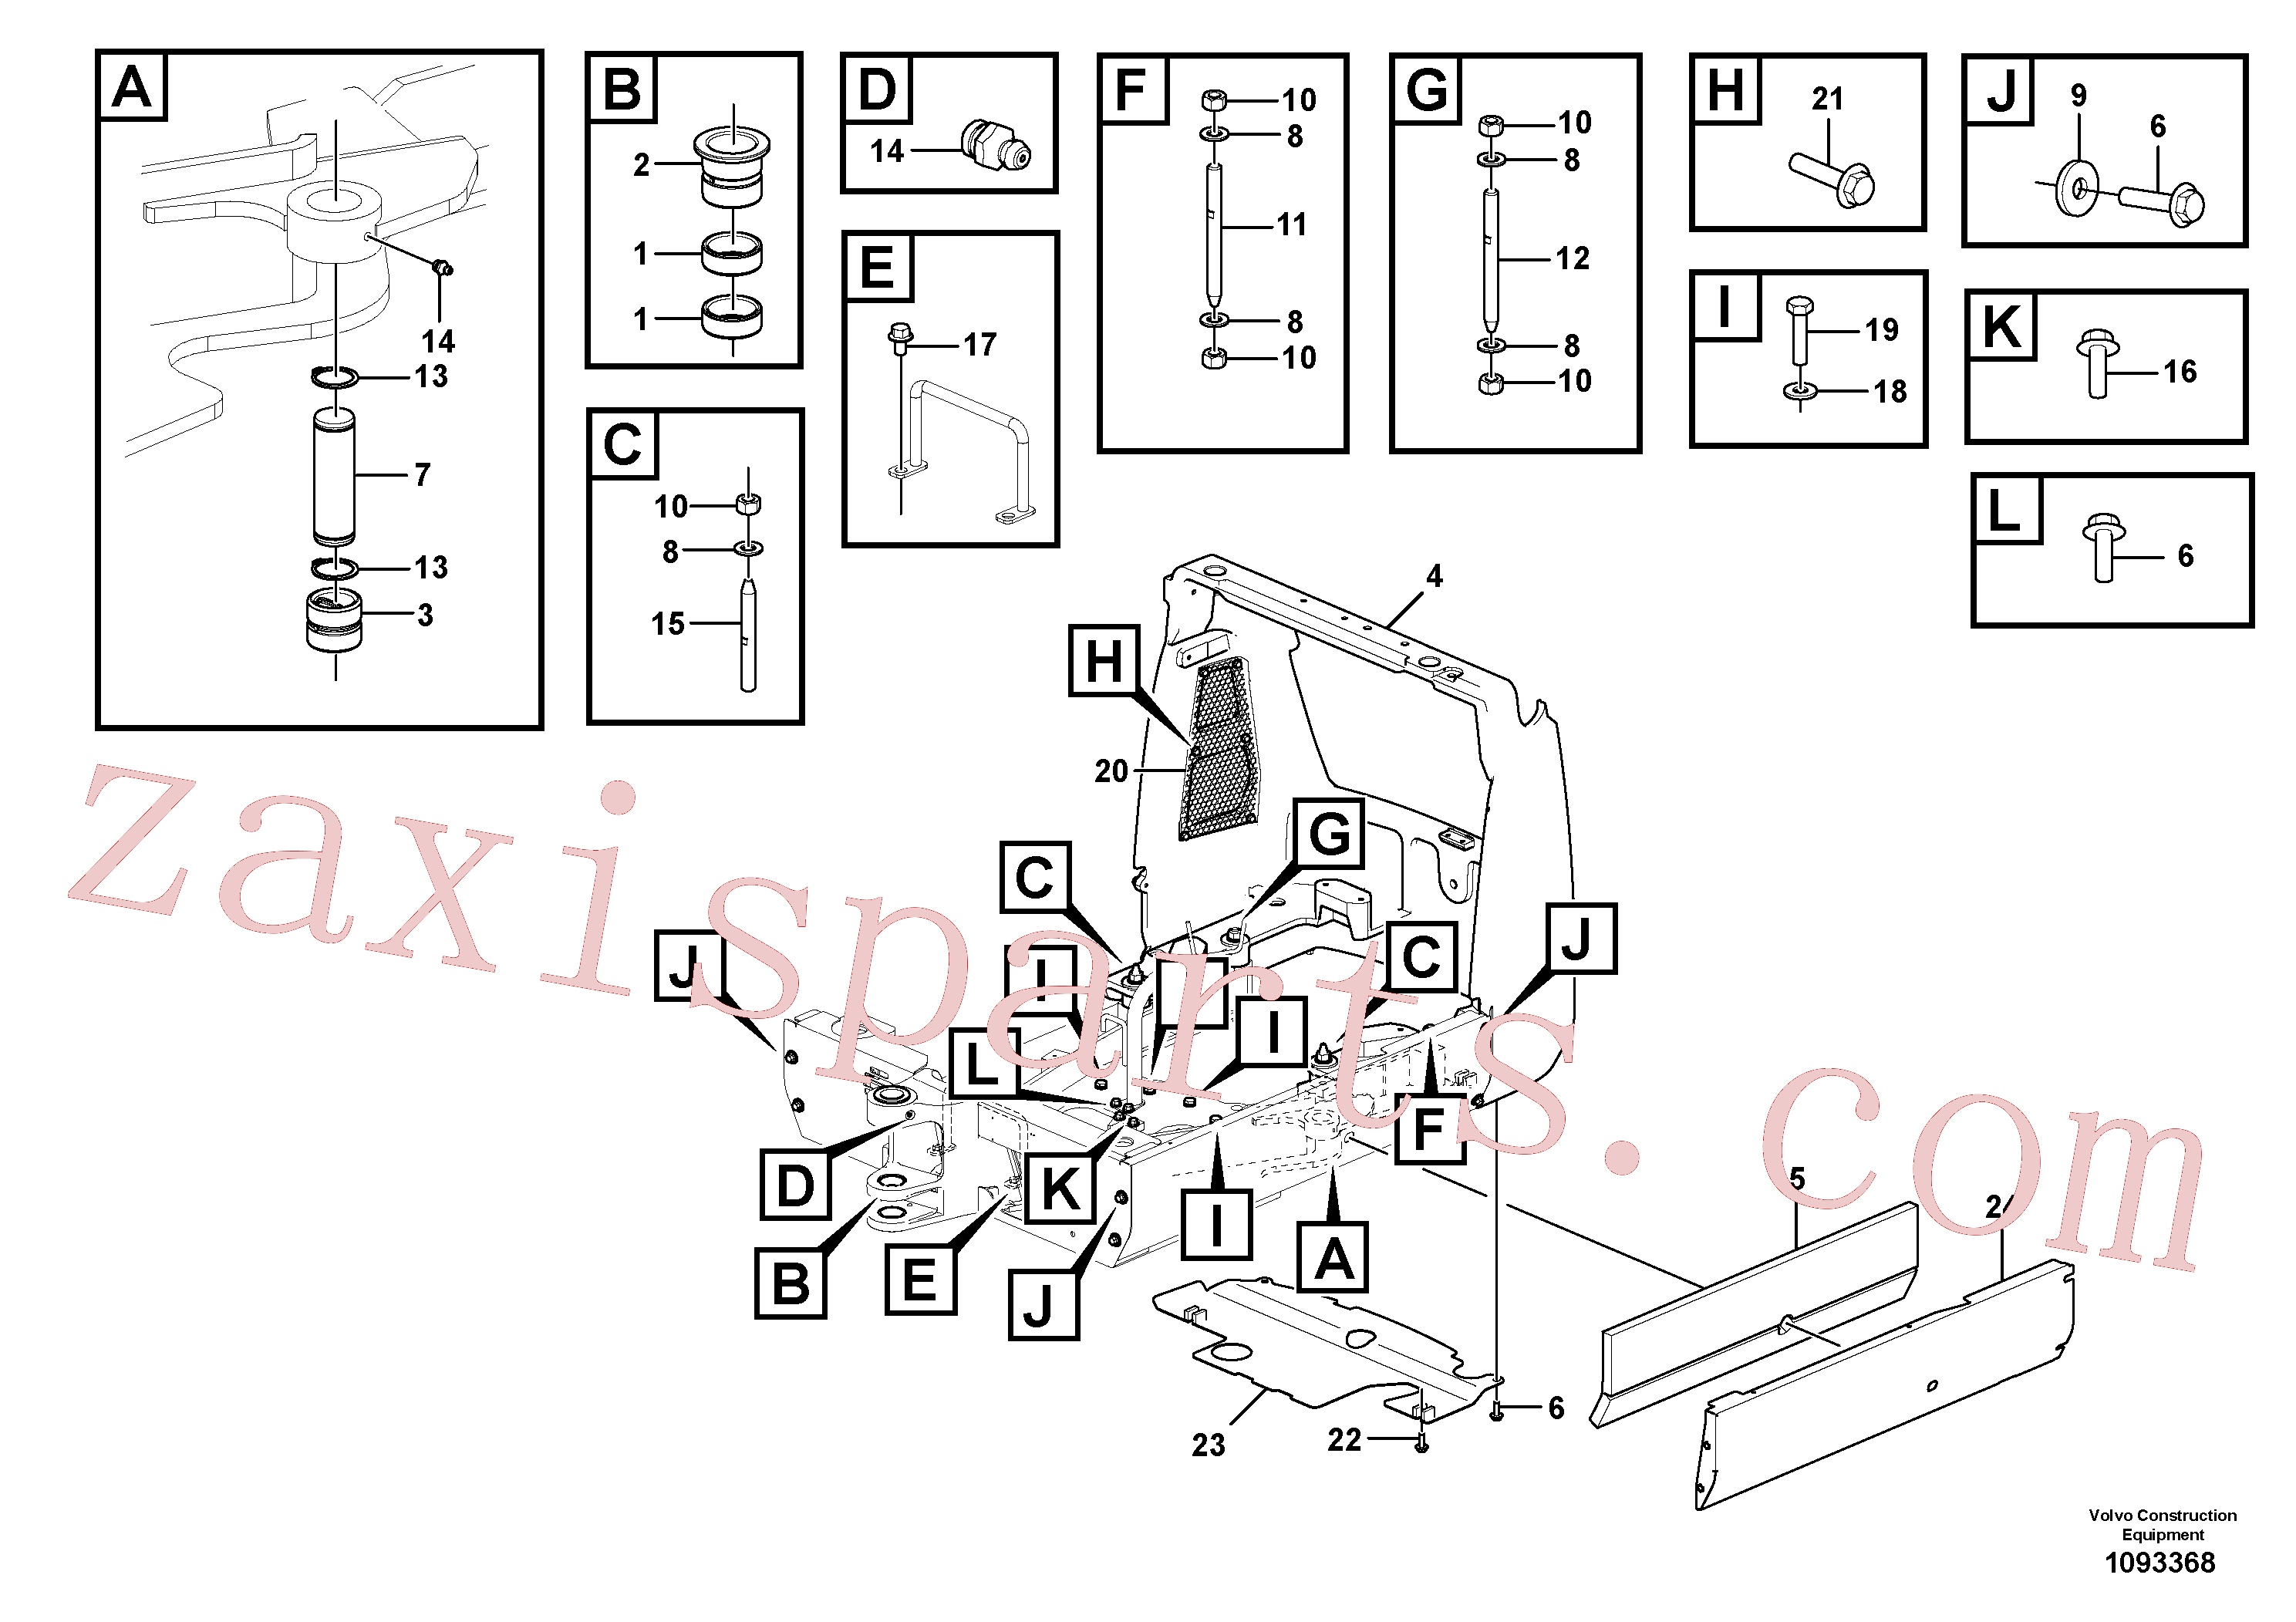 VOE15637869 for Volvo Superstructure(1093368 assembly)